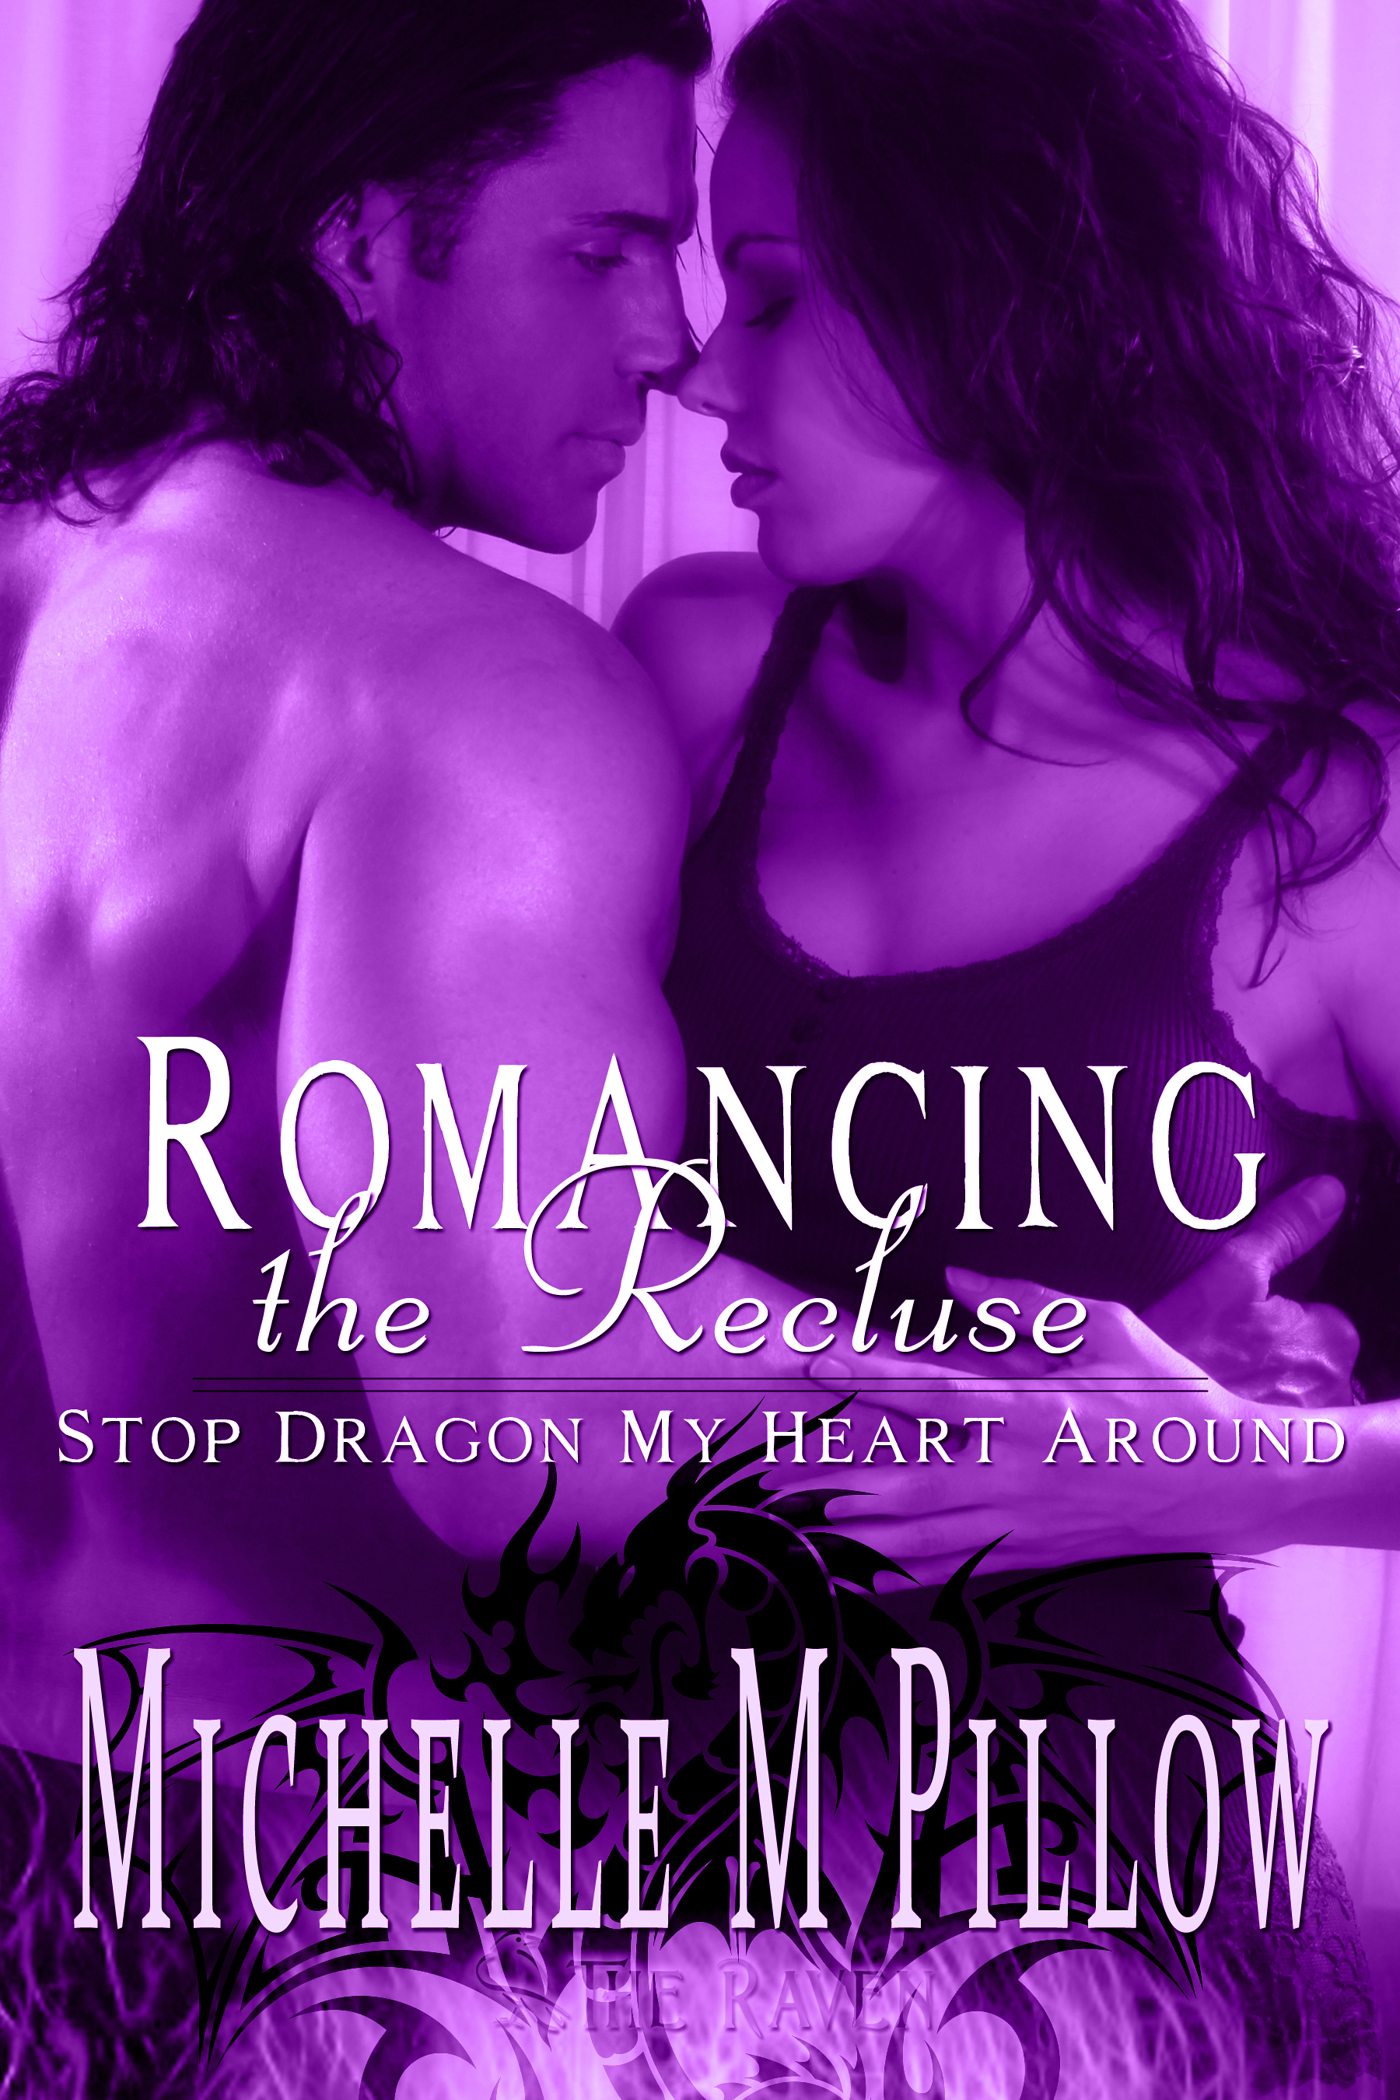 Michelle M. Pillow - Romancing the Recluse (Stop Dragon My Heart Around)